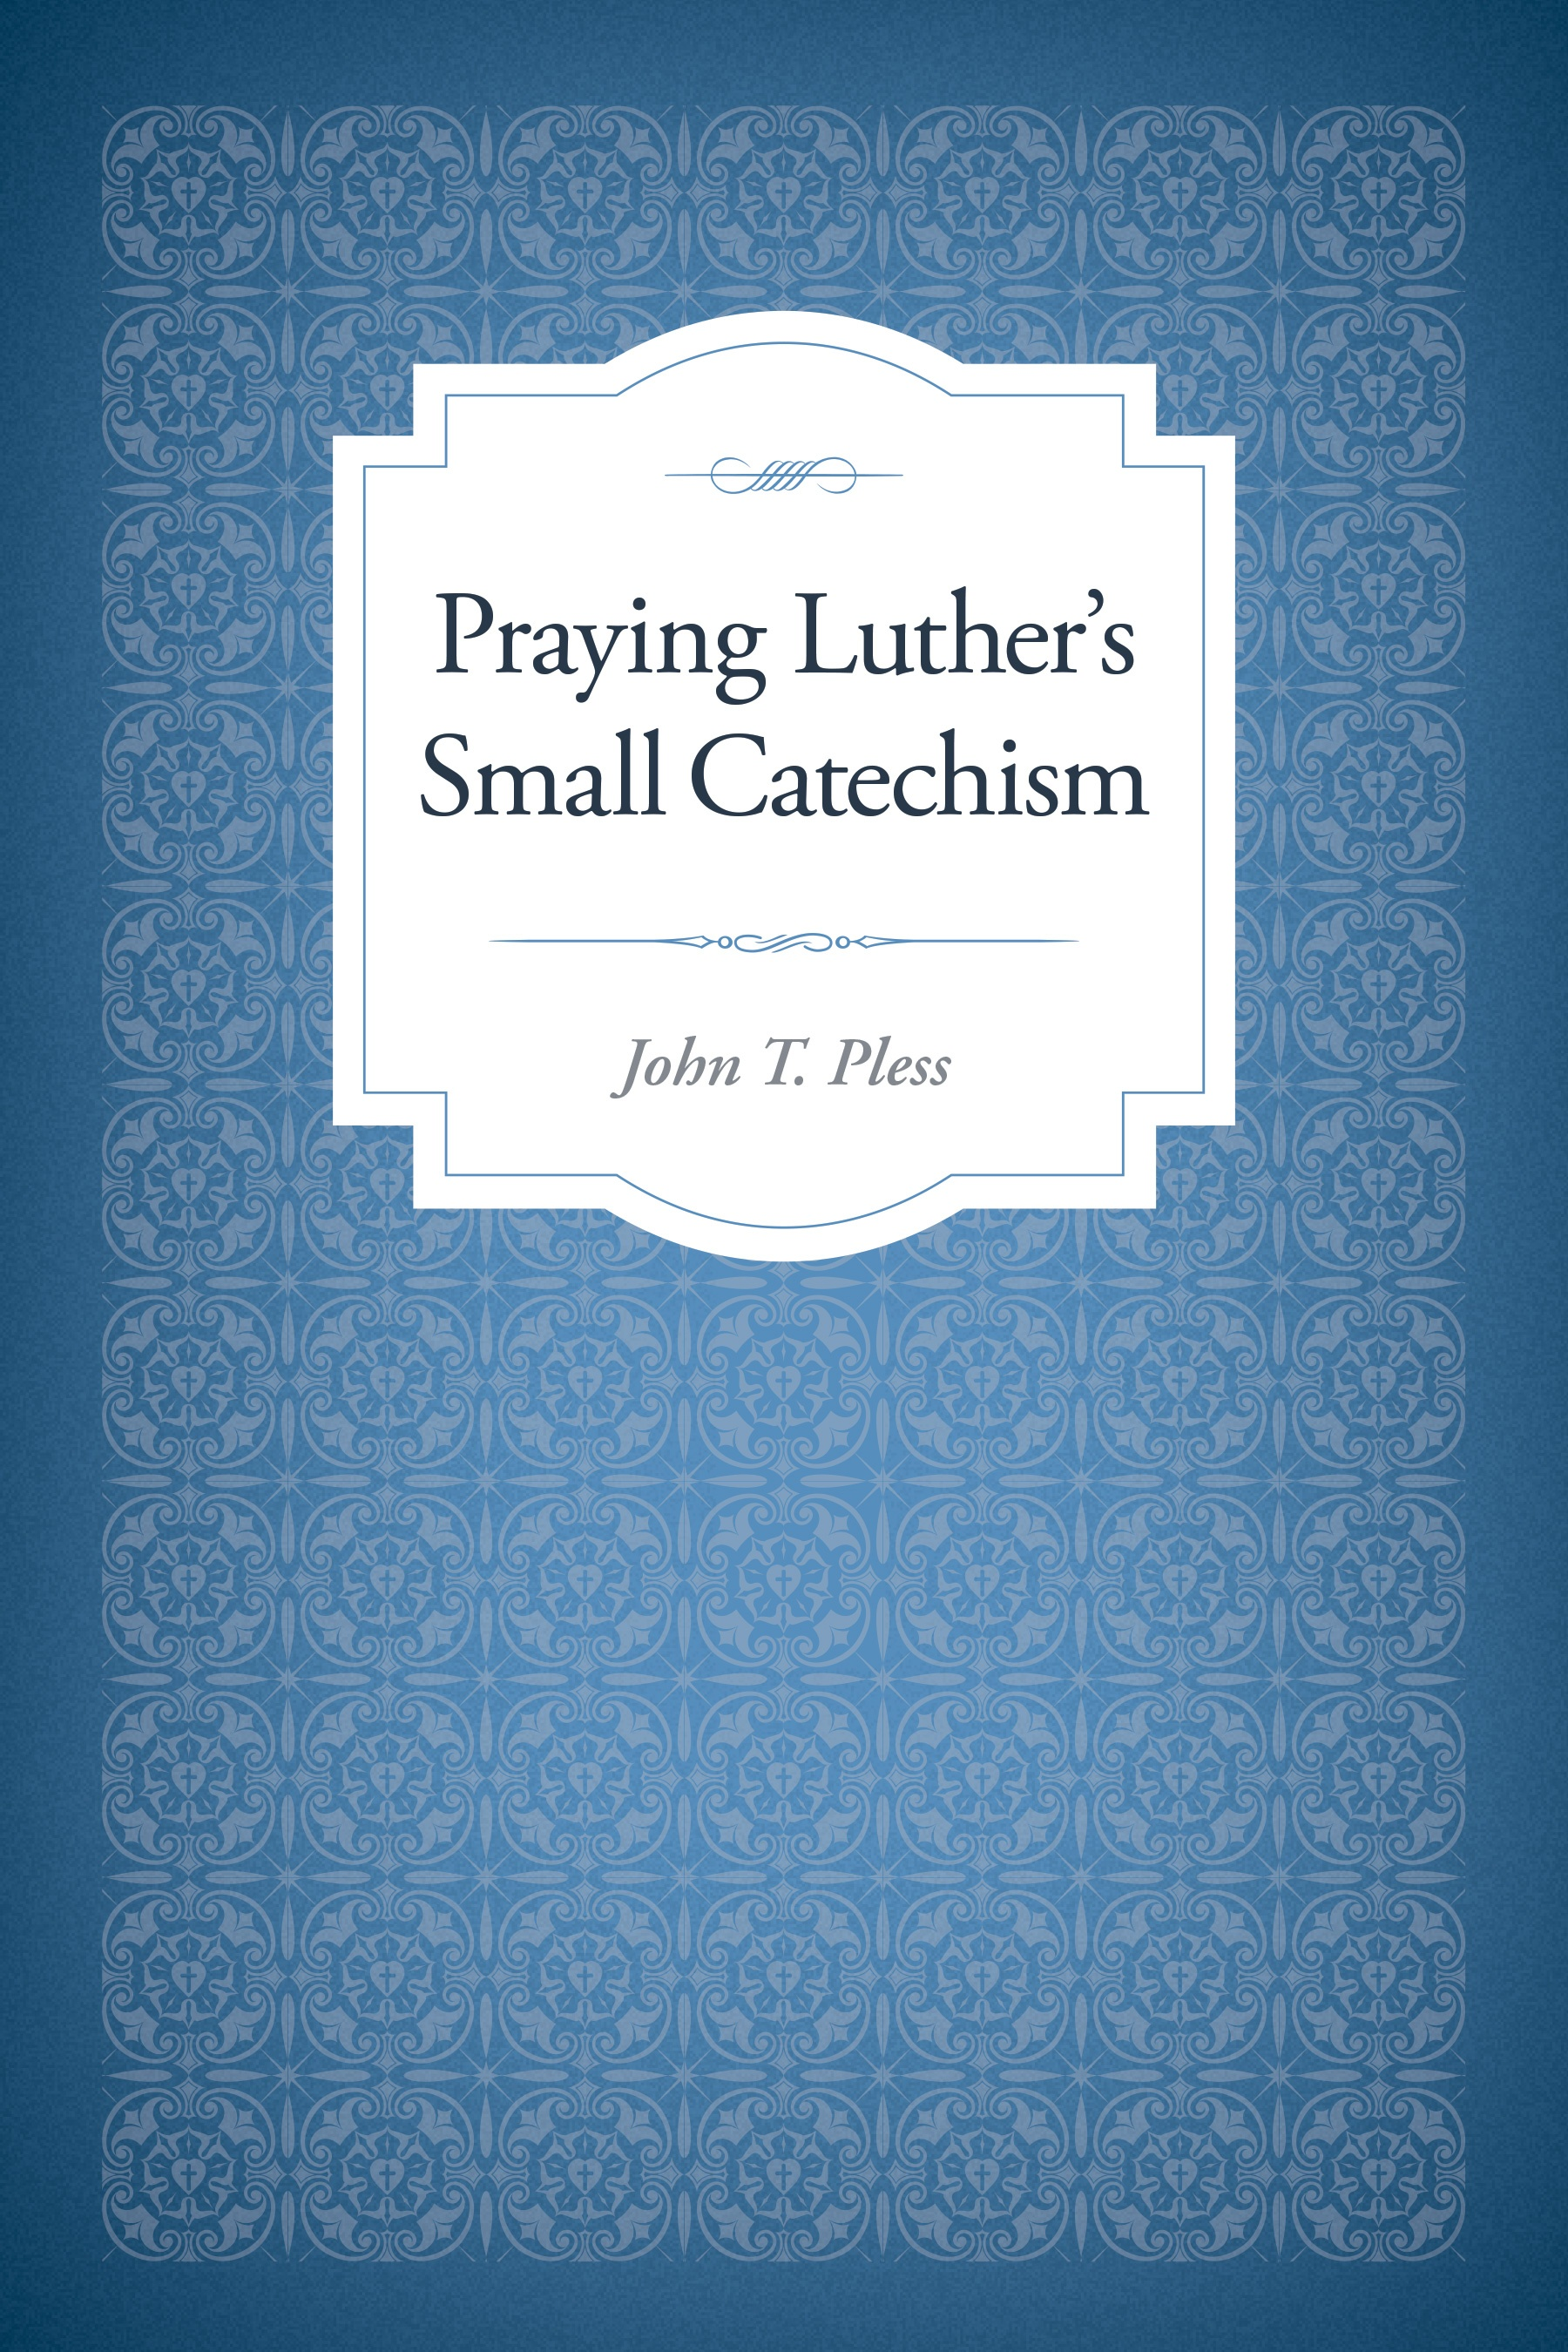 Cover for Praying Luther's Small Catechism